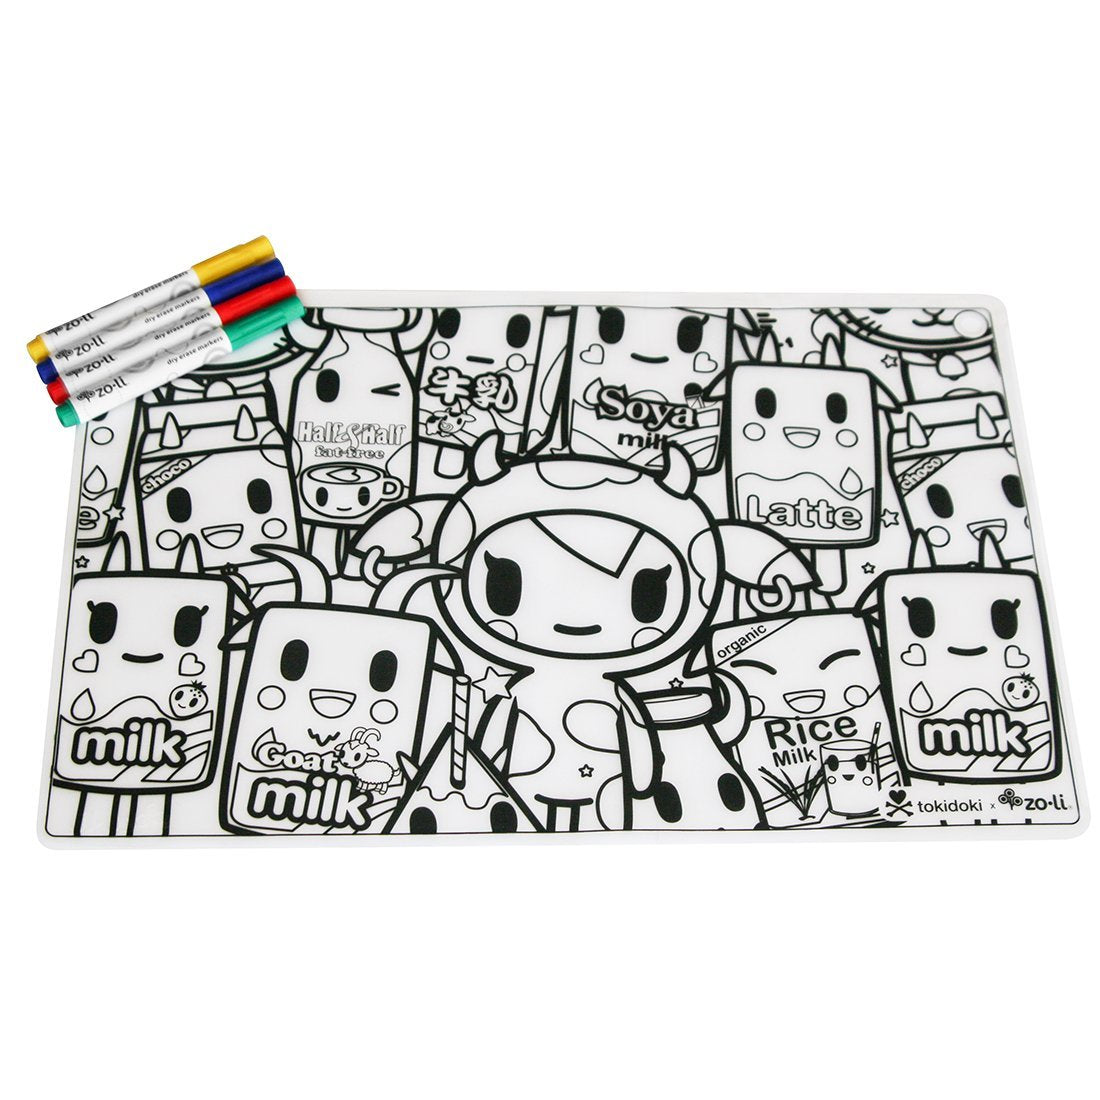 tokiMATTIES-tokidoki-colorable-placemats